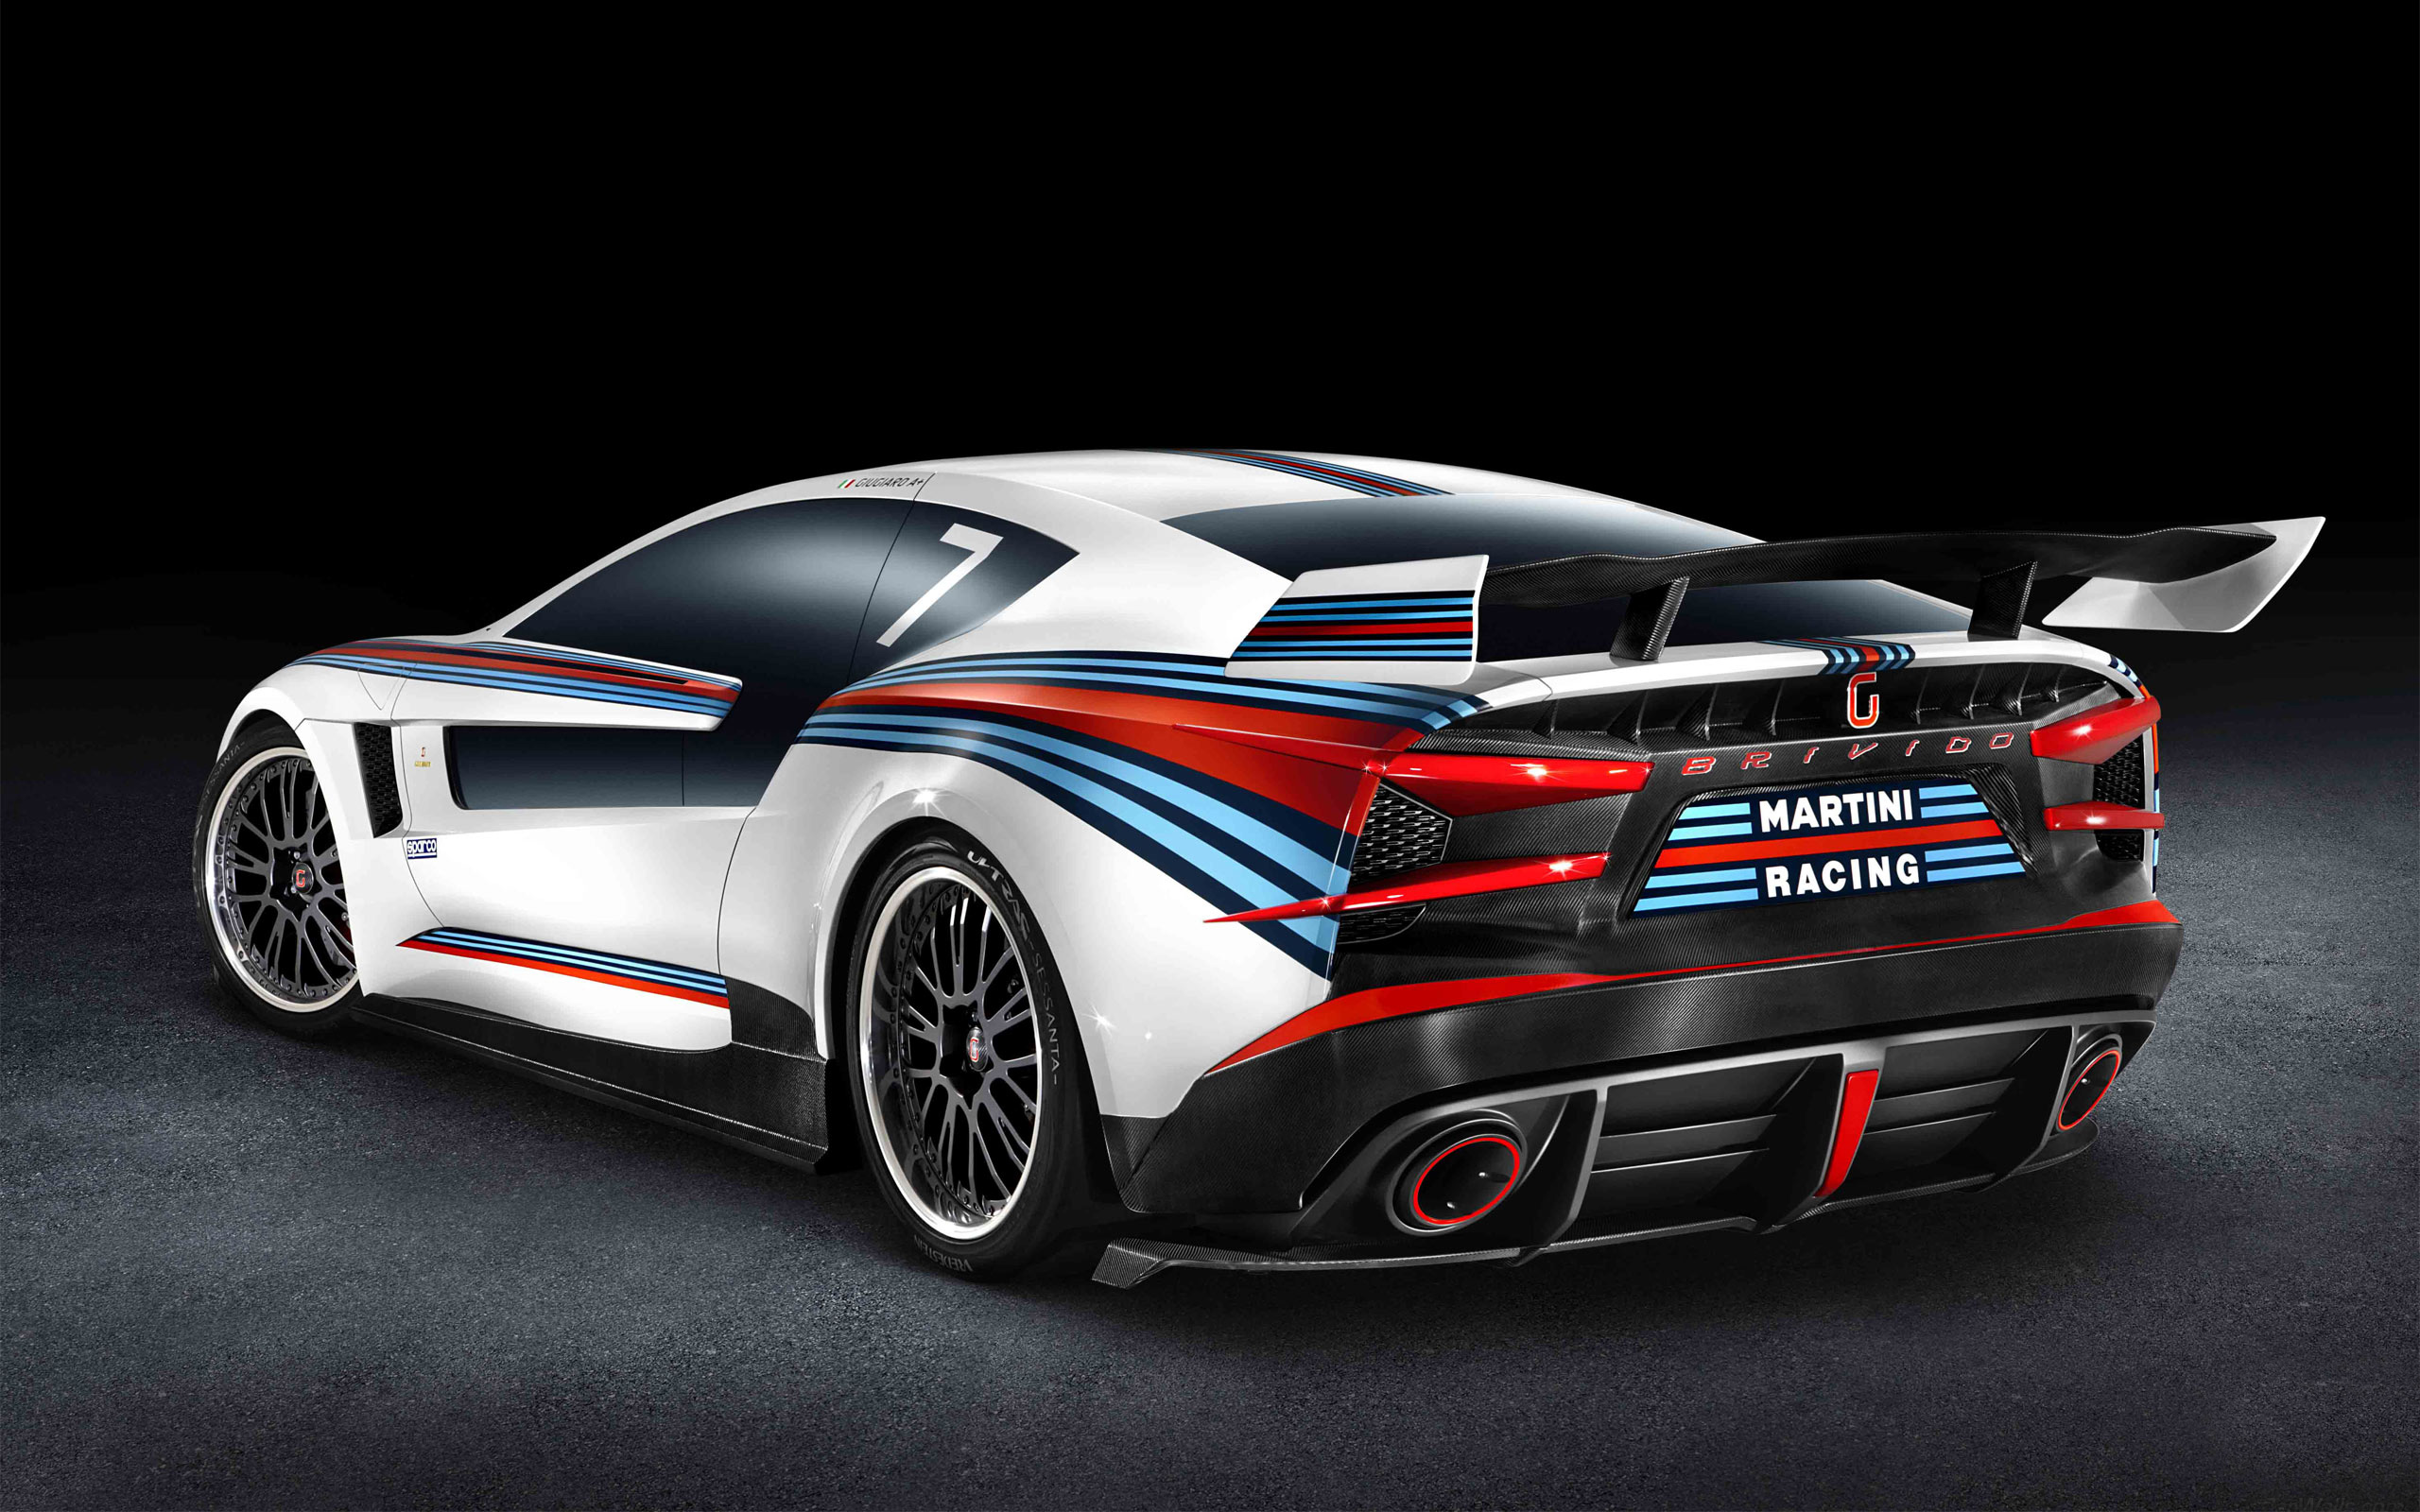 Italdesign Brivido Martini Racing 2 Wallpaper HD Car Wallpapers 2560x1600